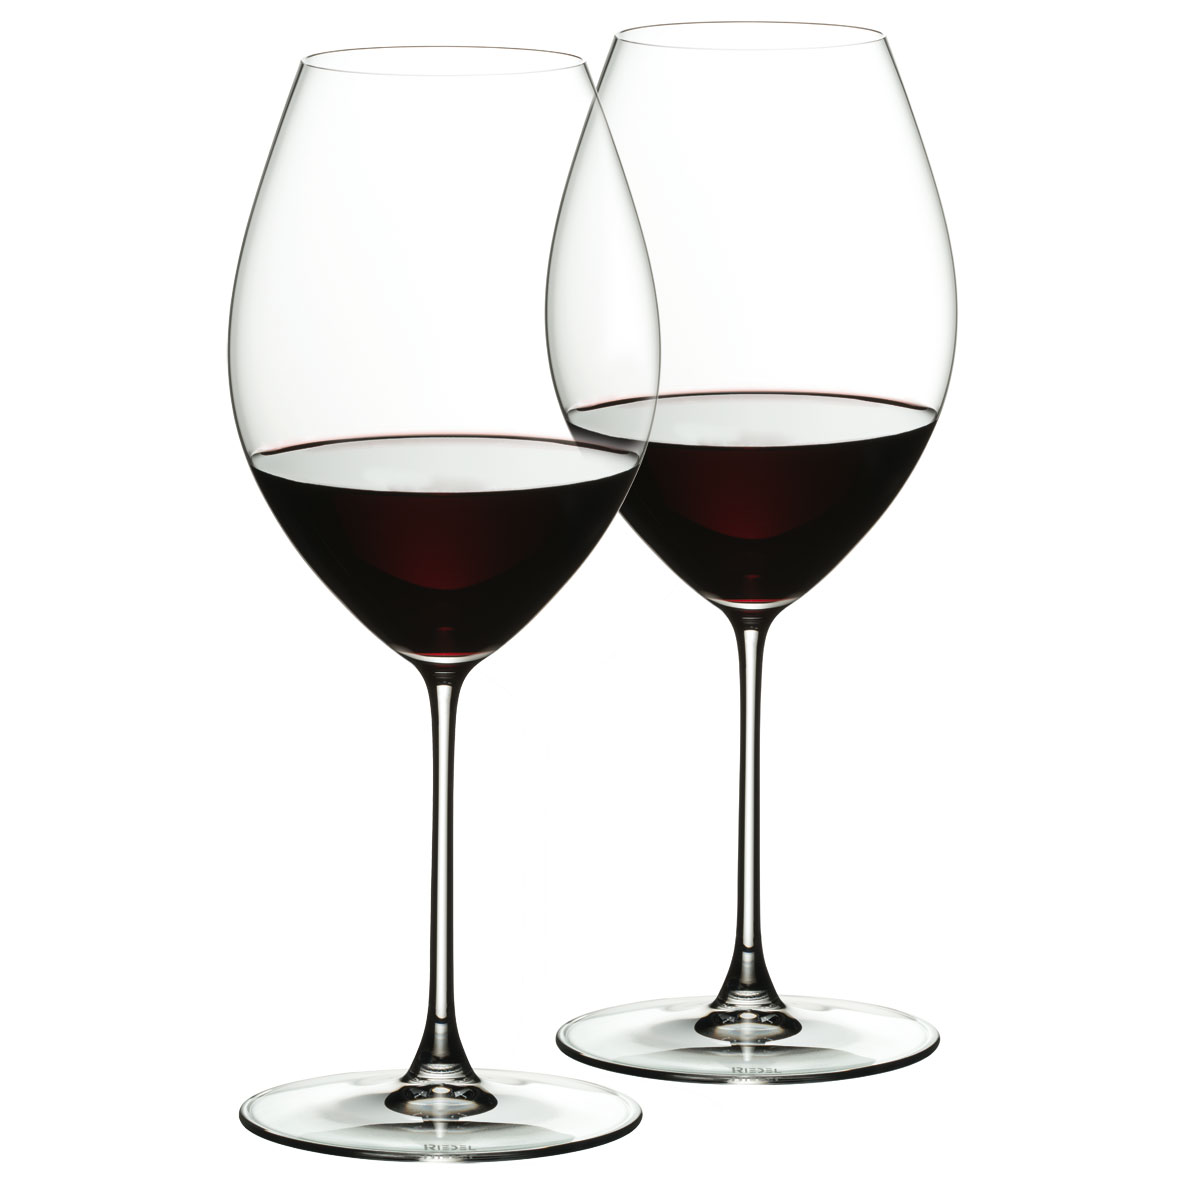 Riedel Veritas, Old World Syrah Crystal Wine Glasses, Pair